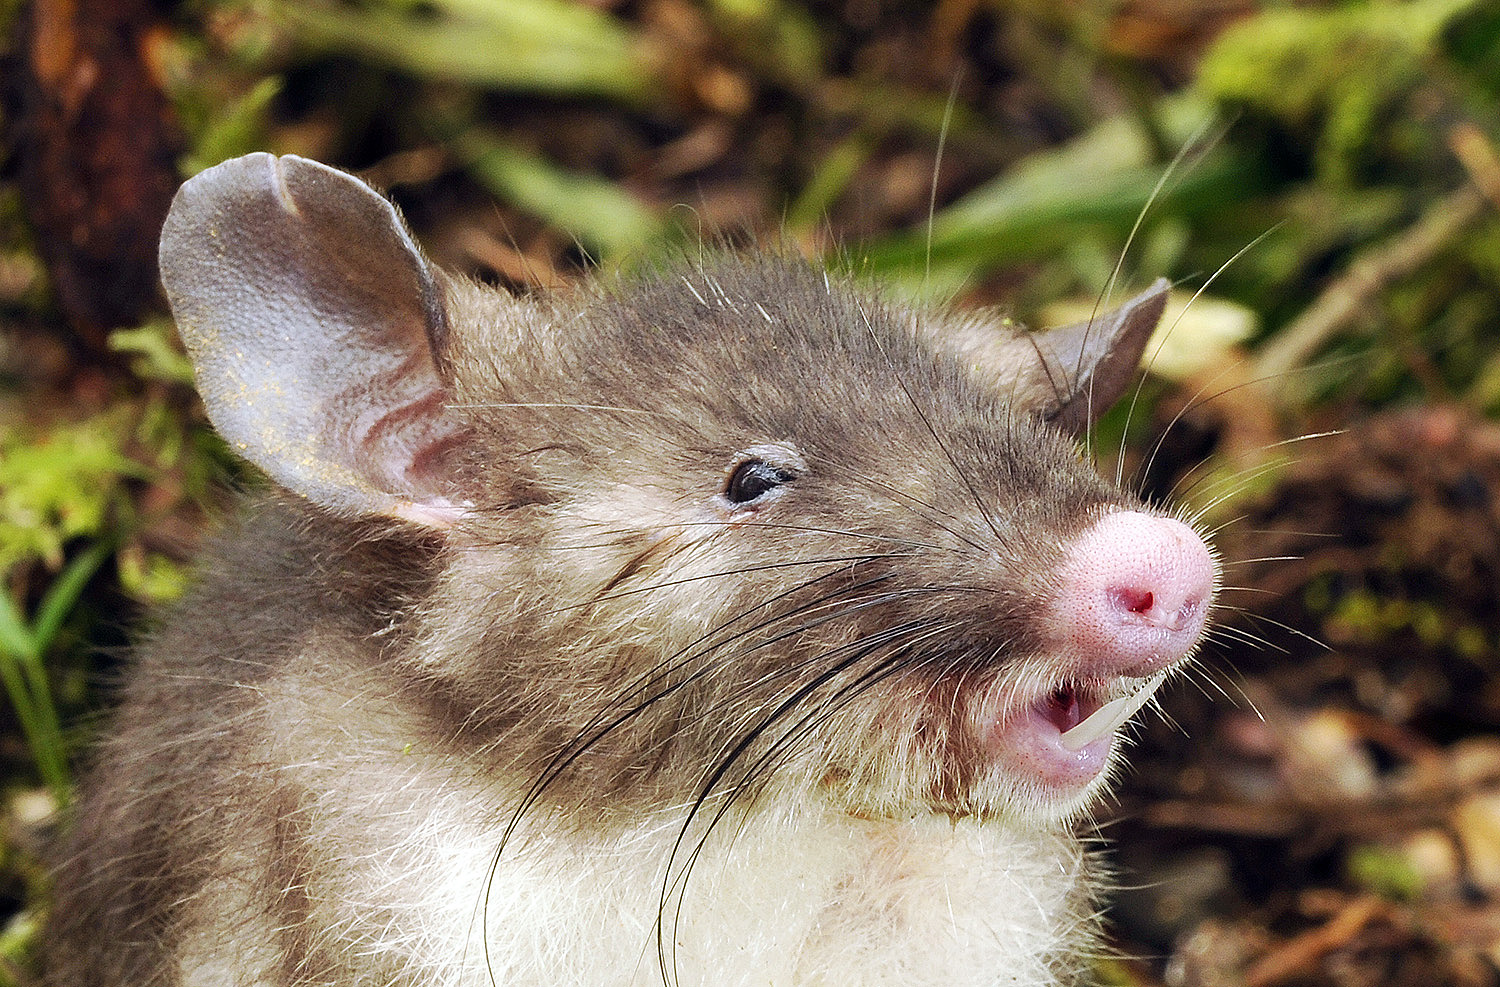 This newly discovered species of rat is called Hyorhinomys stuempkei, or the hog-nosed rat